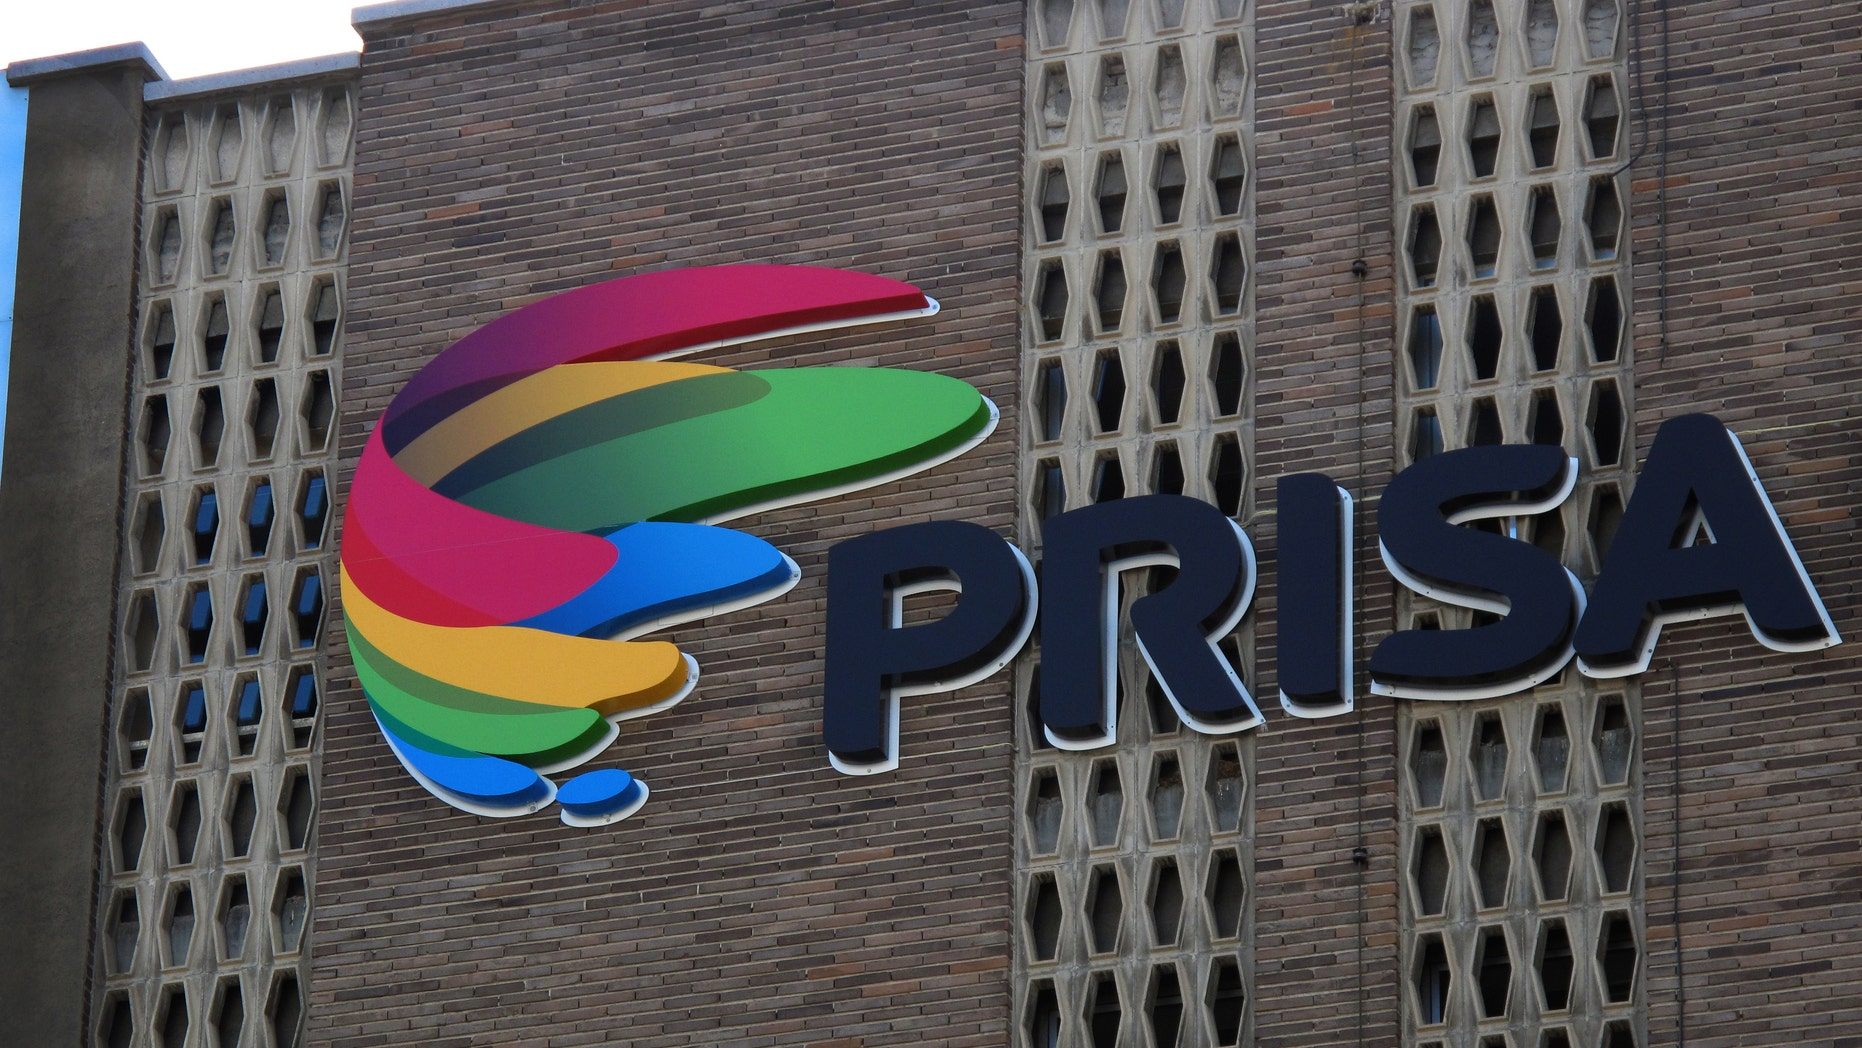 Prisa is a leading communications group with a strong presence in South America, Madrid, Spain.